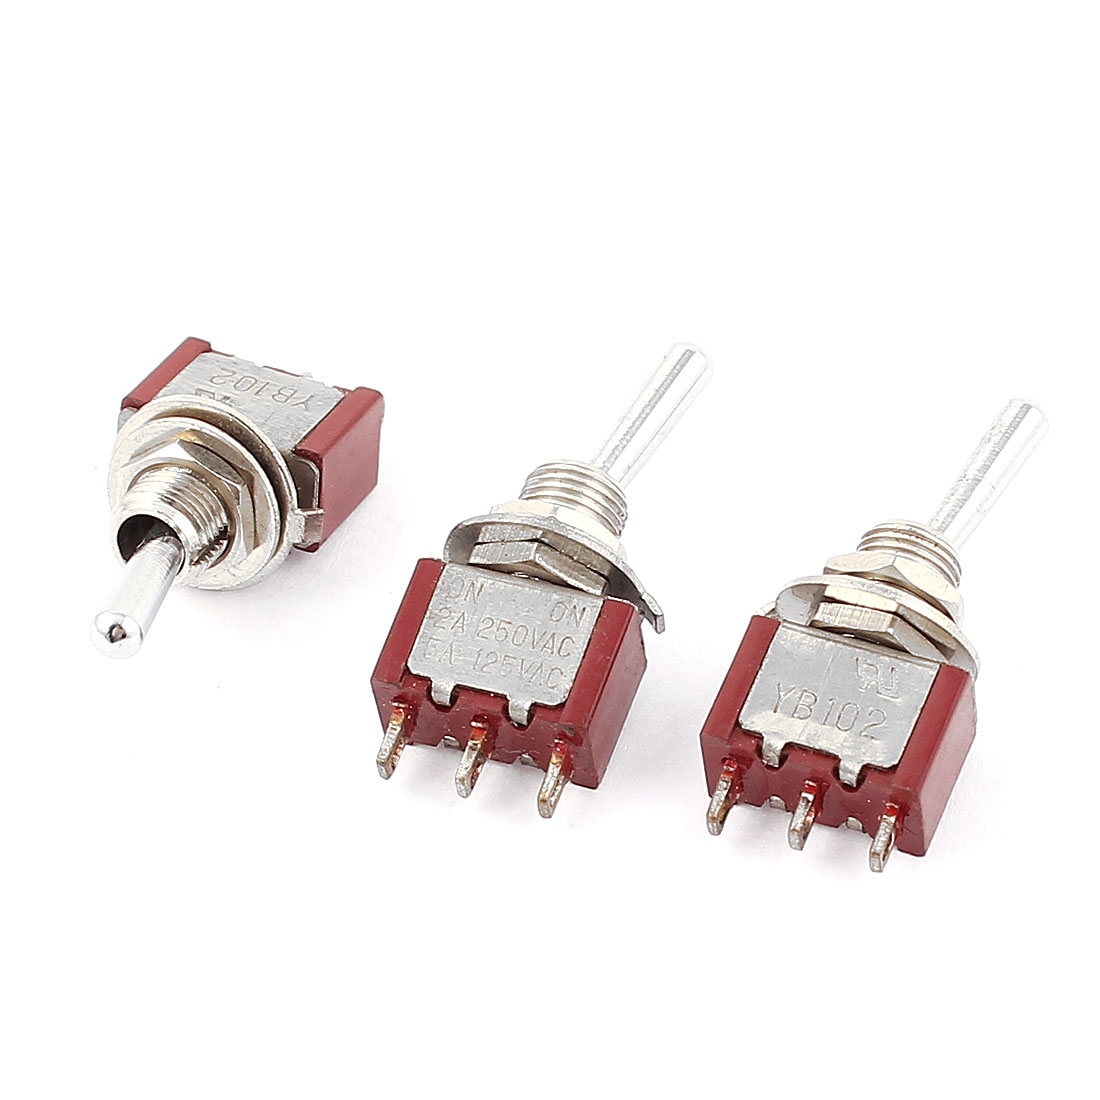 3pcs SPDT On/On 2 Position Miniature Toggle Switch AC 250V 2A/125V 5A